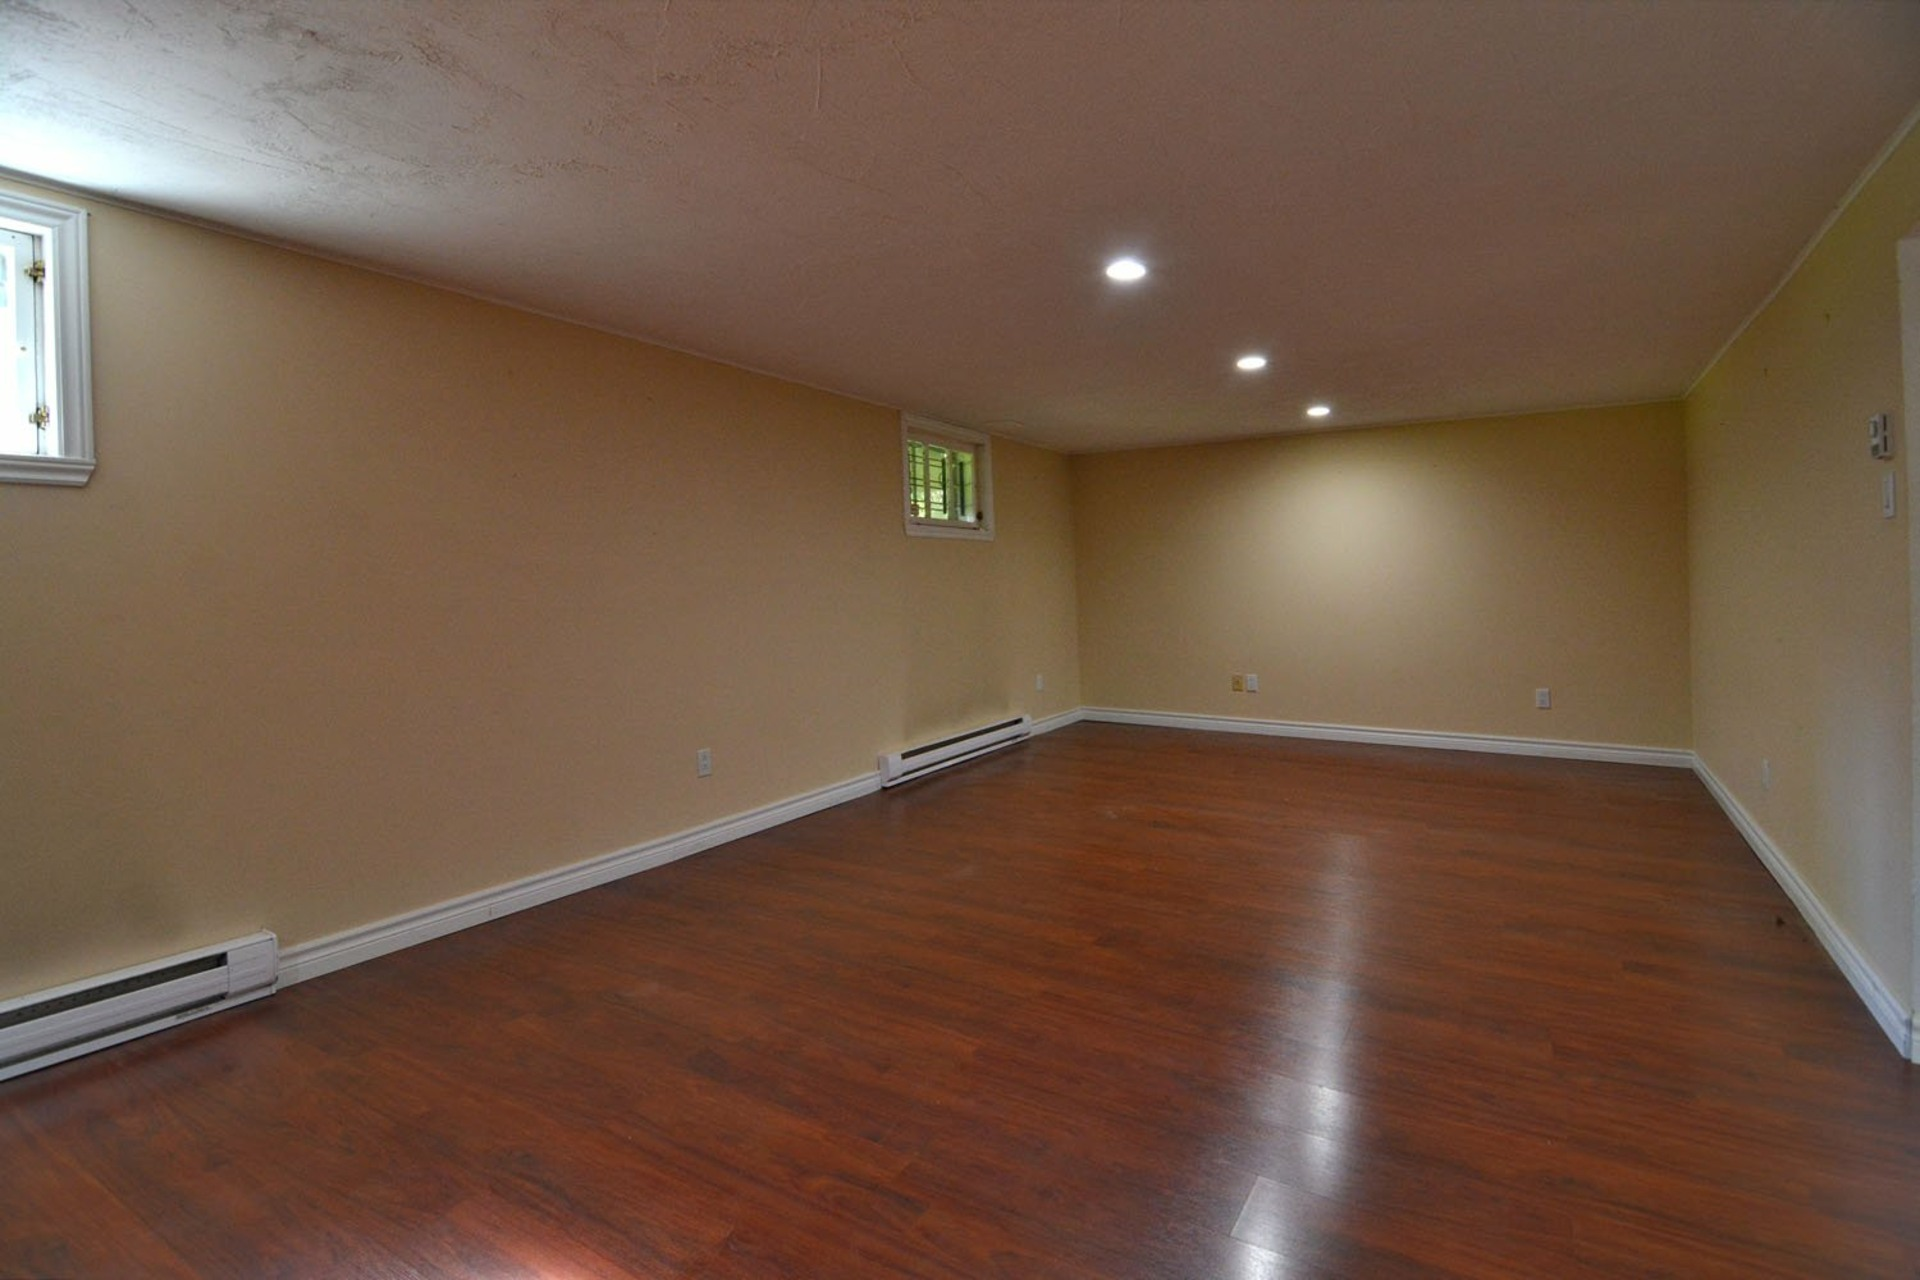 image 14 - House For rent Beaconsfield - 7 rooms